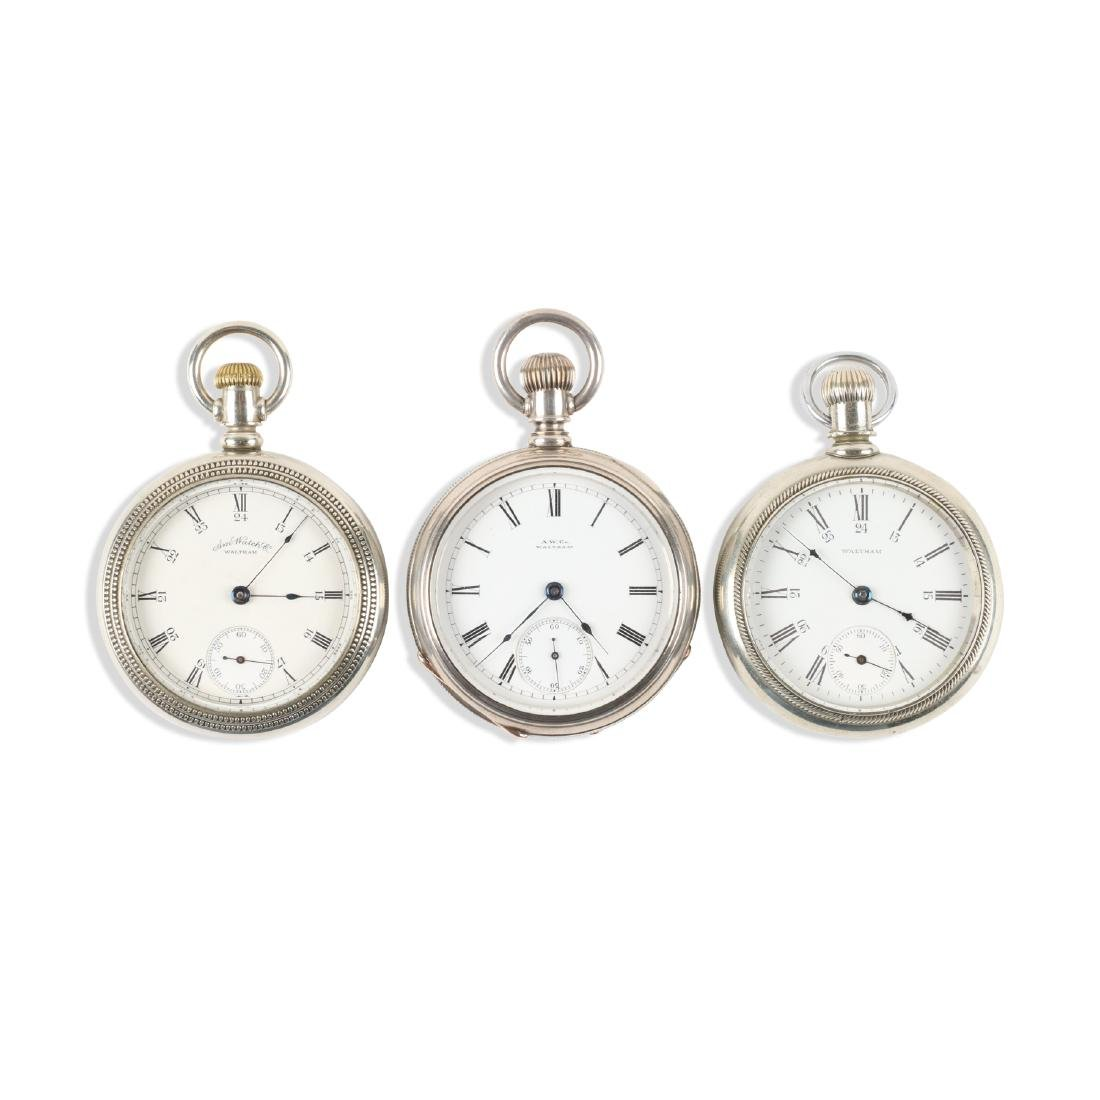 Waltham, Bartlett & Sterling Pocket Watches